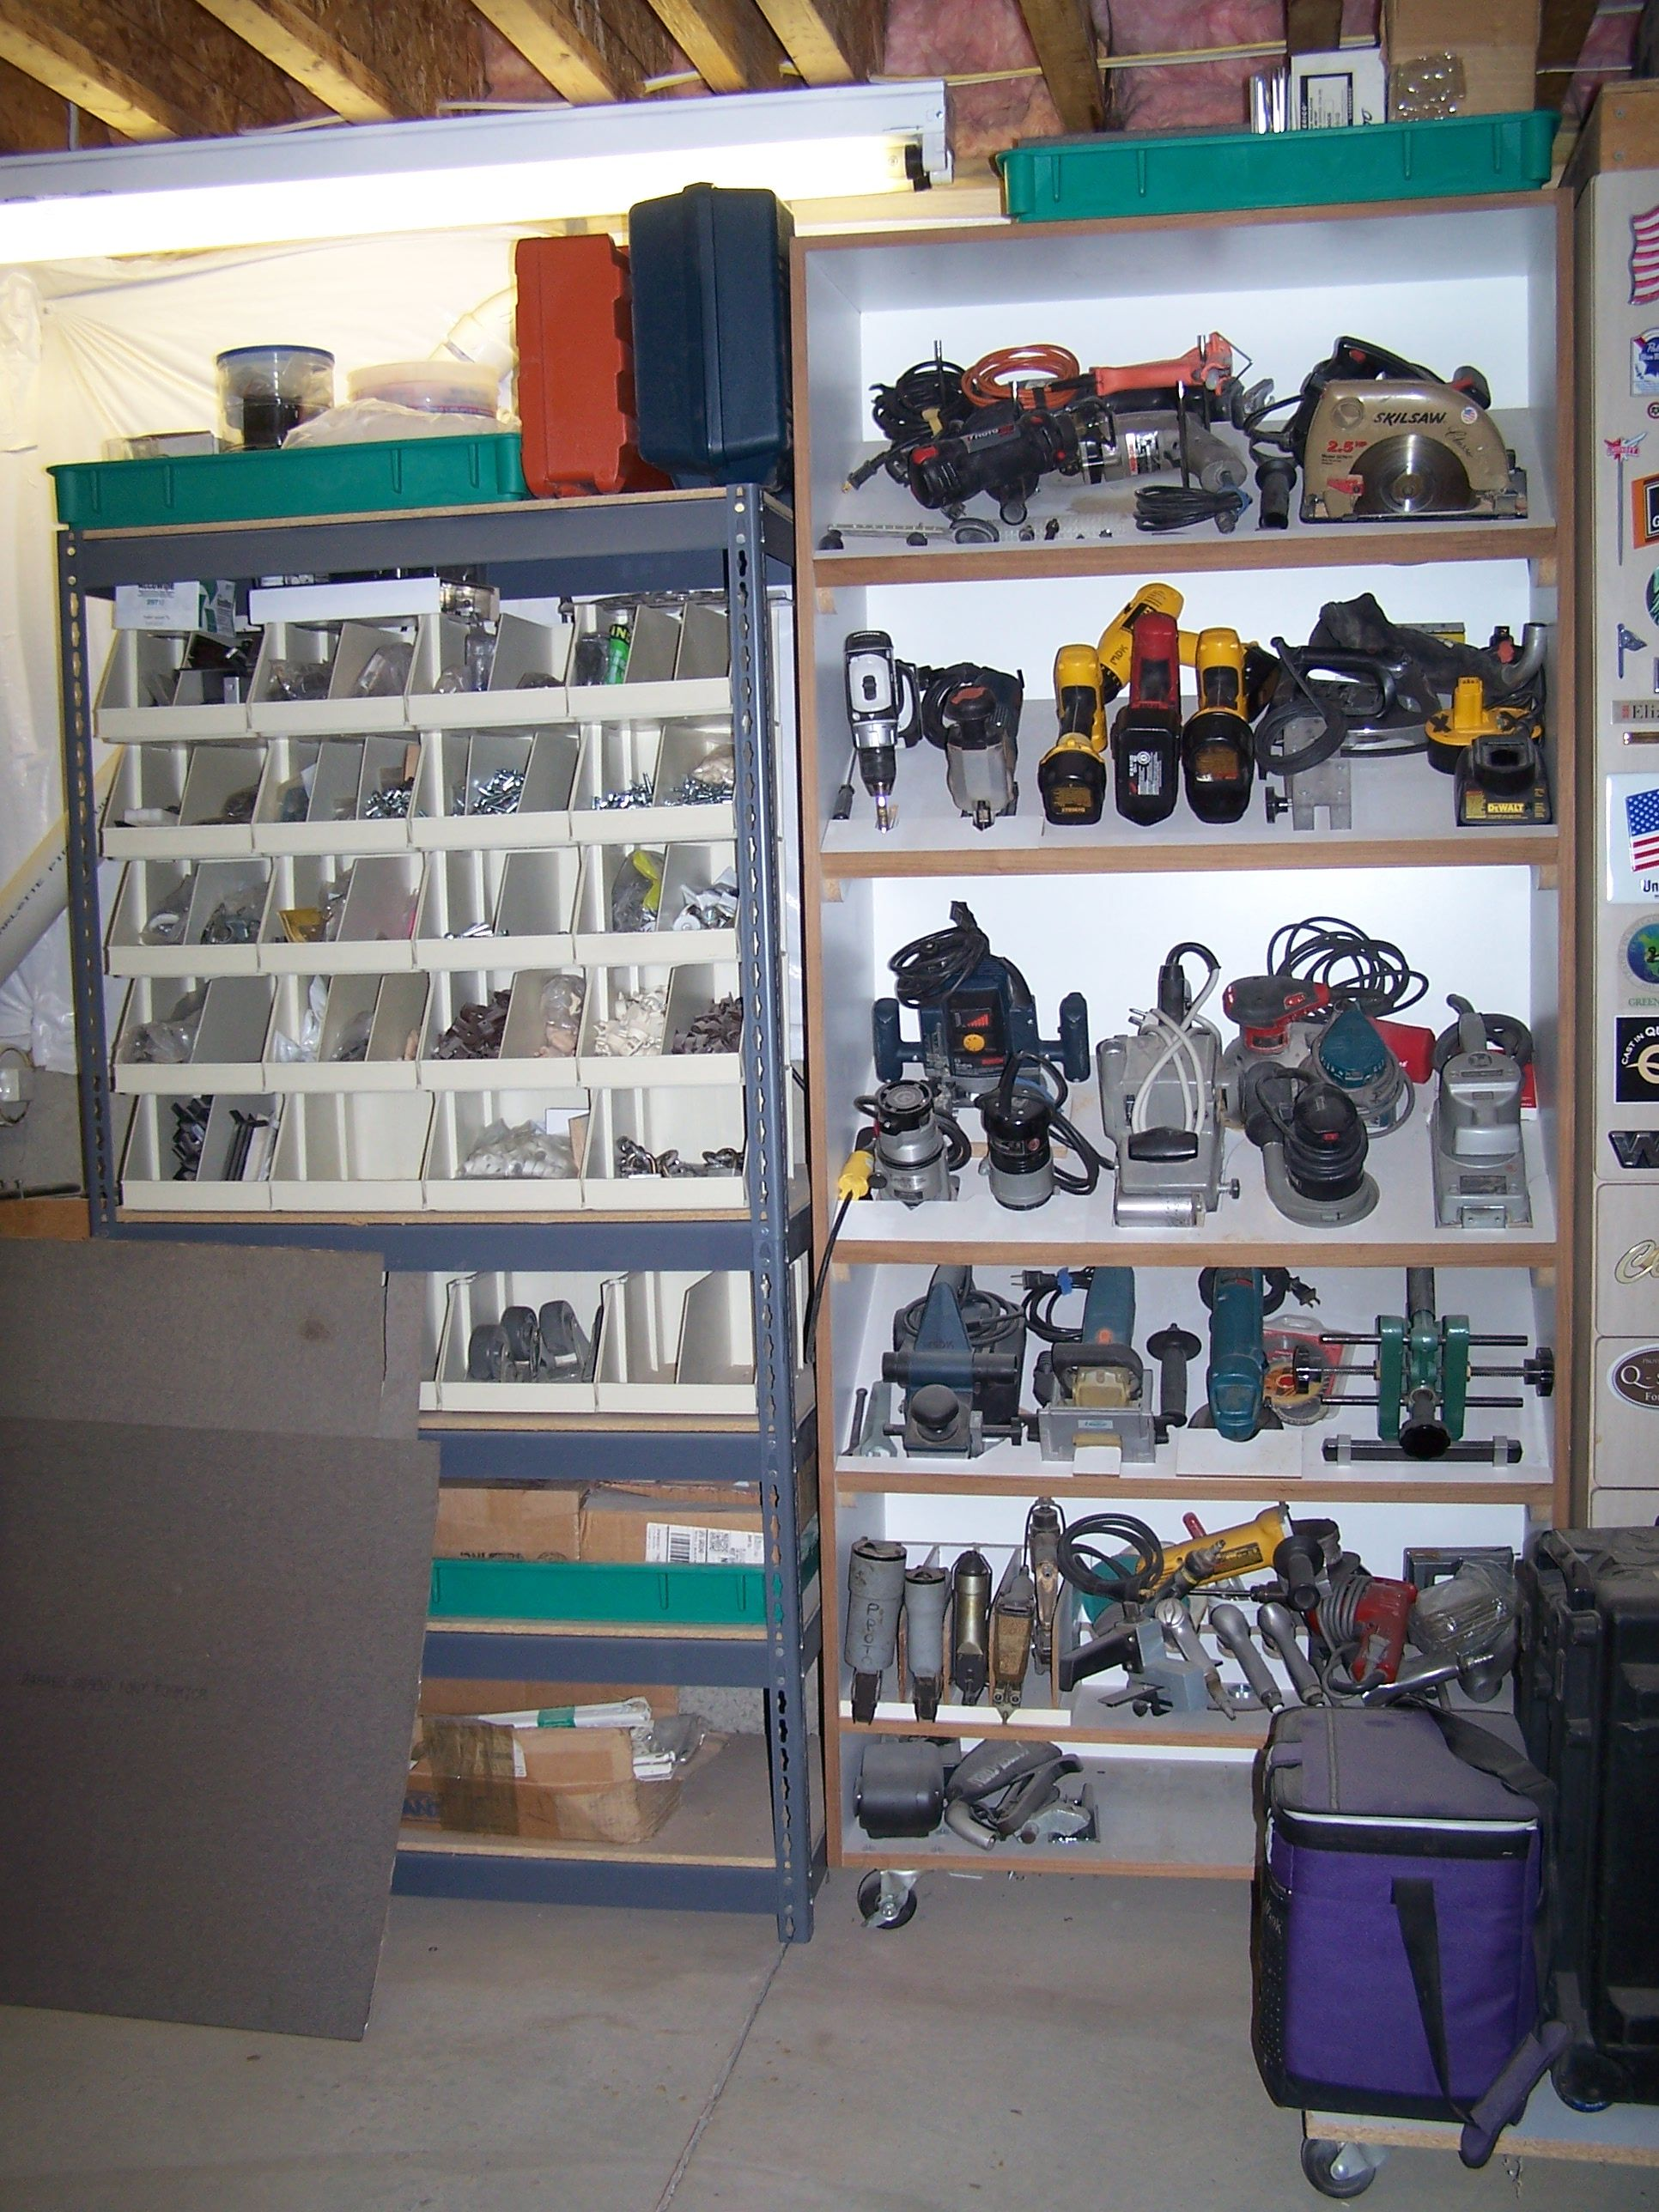 tools organized ideas for the garage ? love the slanted shelves for